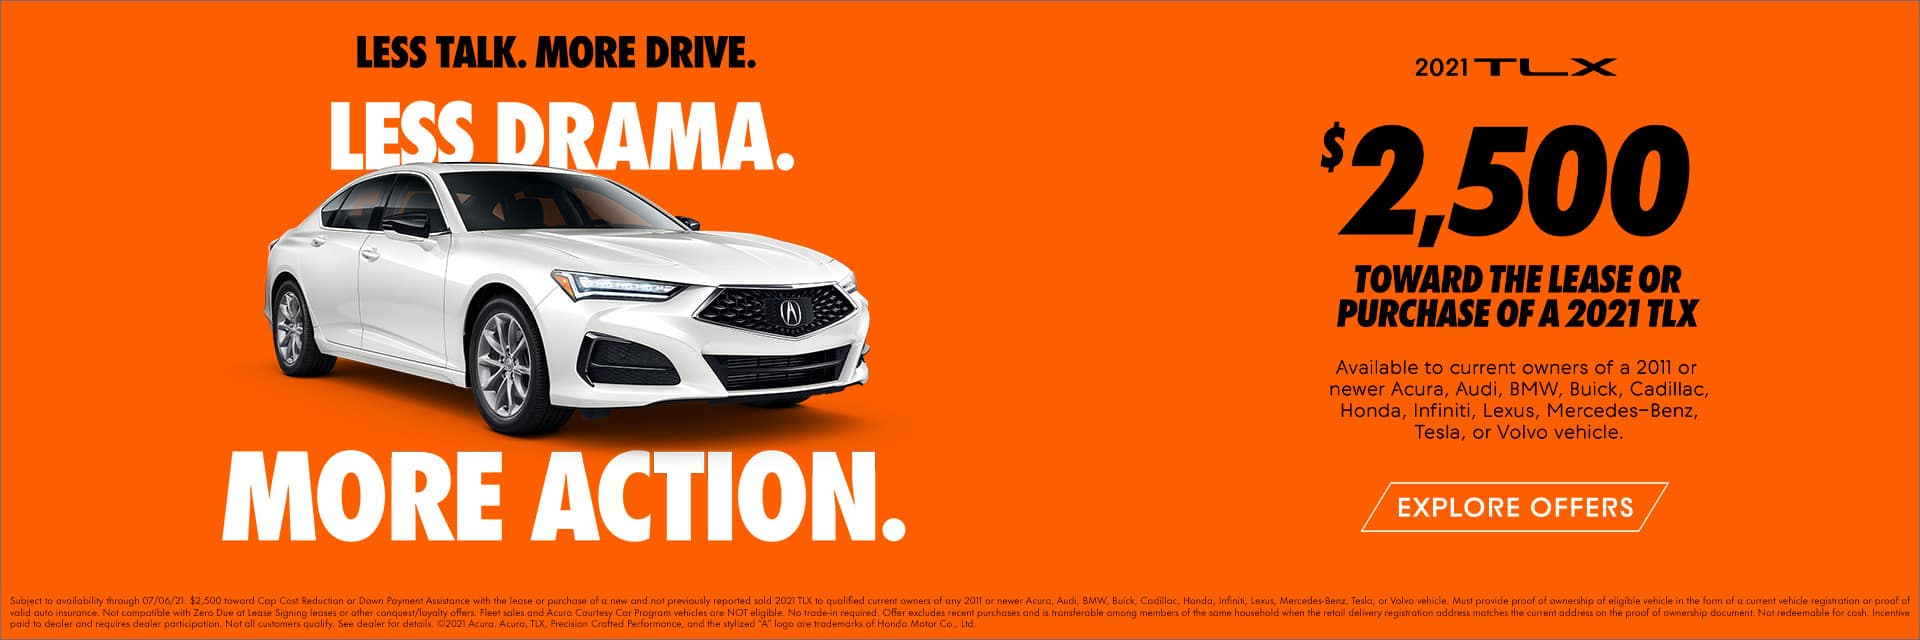 2021 Acura TLX Loyalty or Conquest Offer Sunnyside Acura Nashua NH 03063